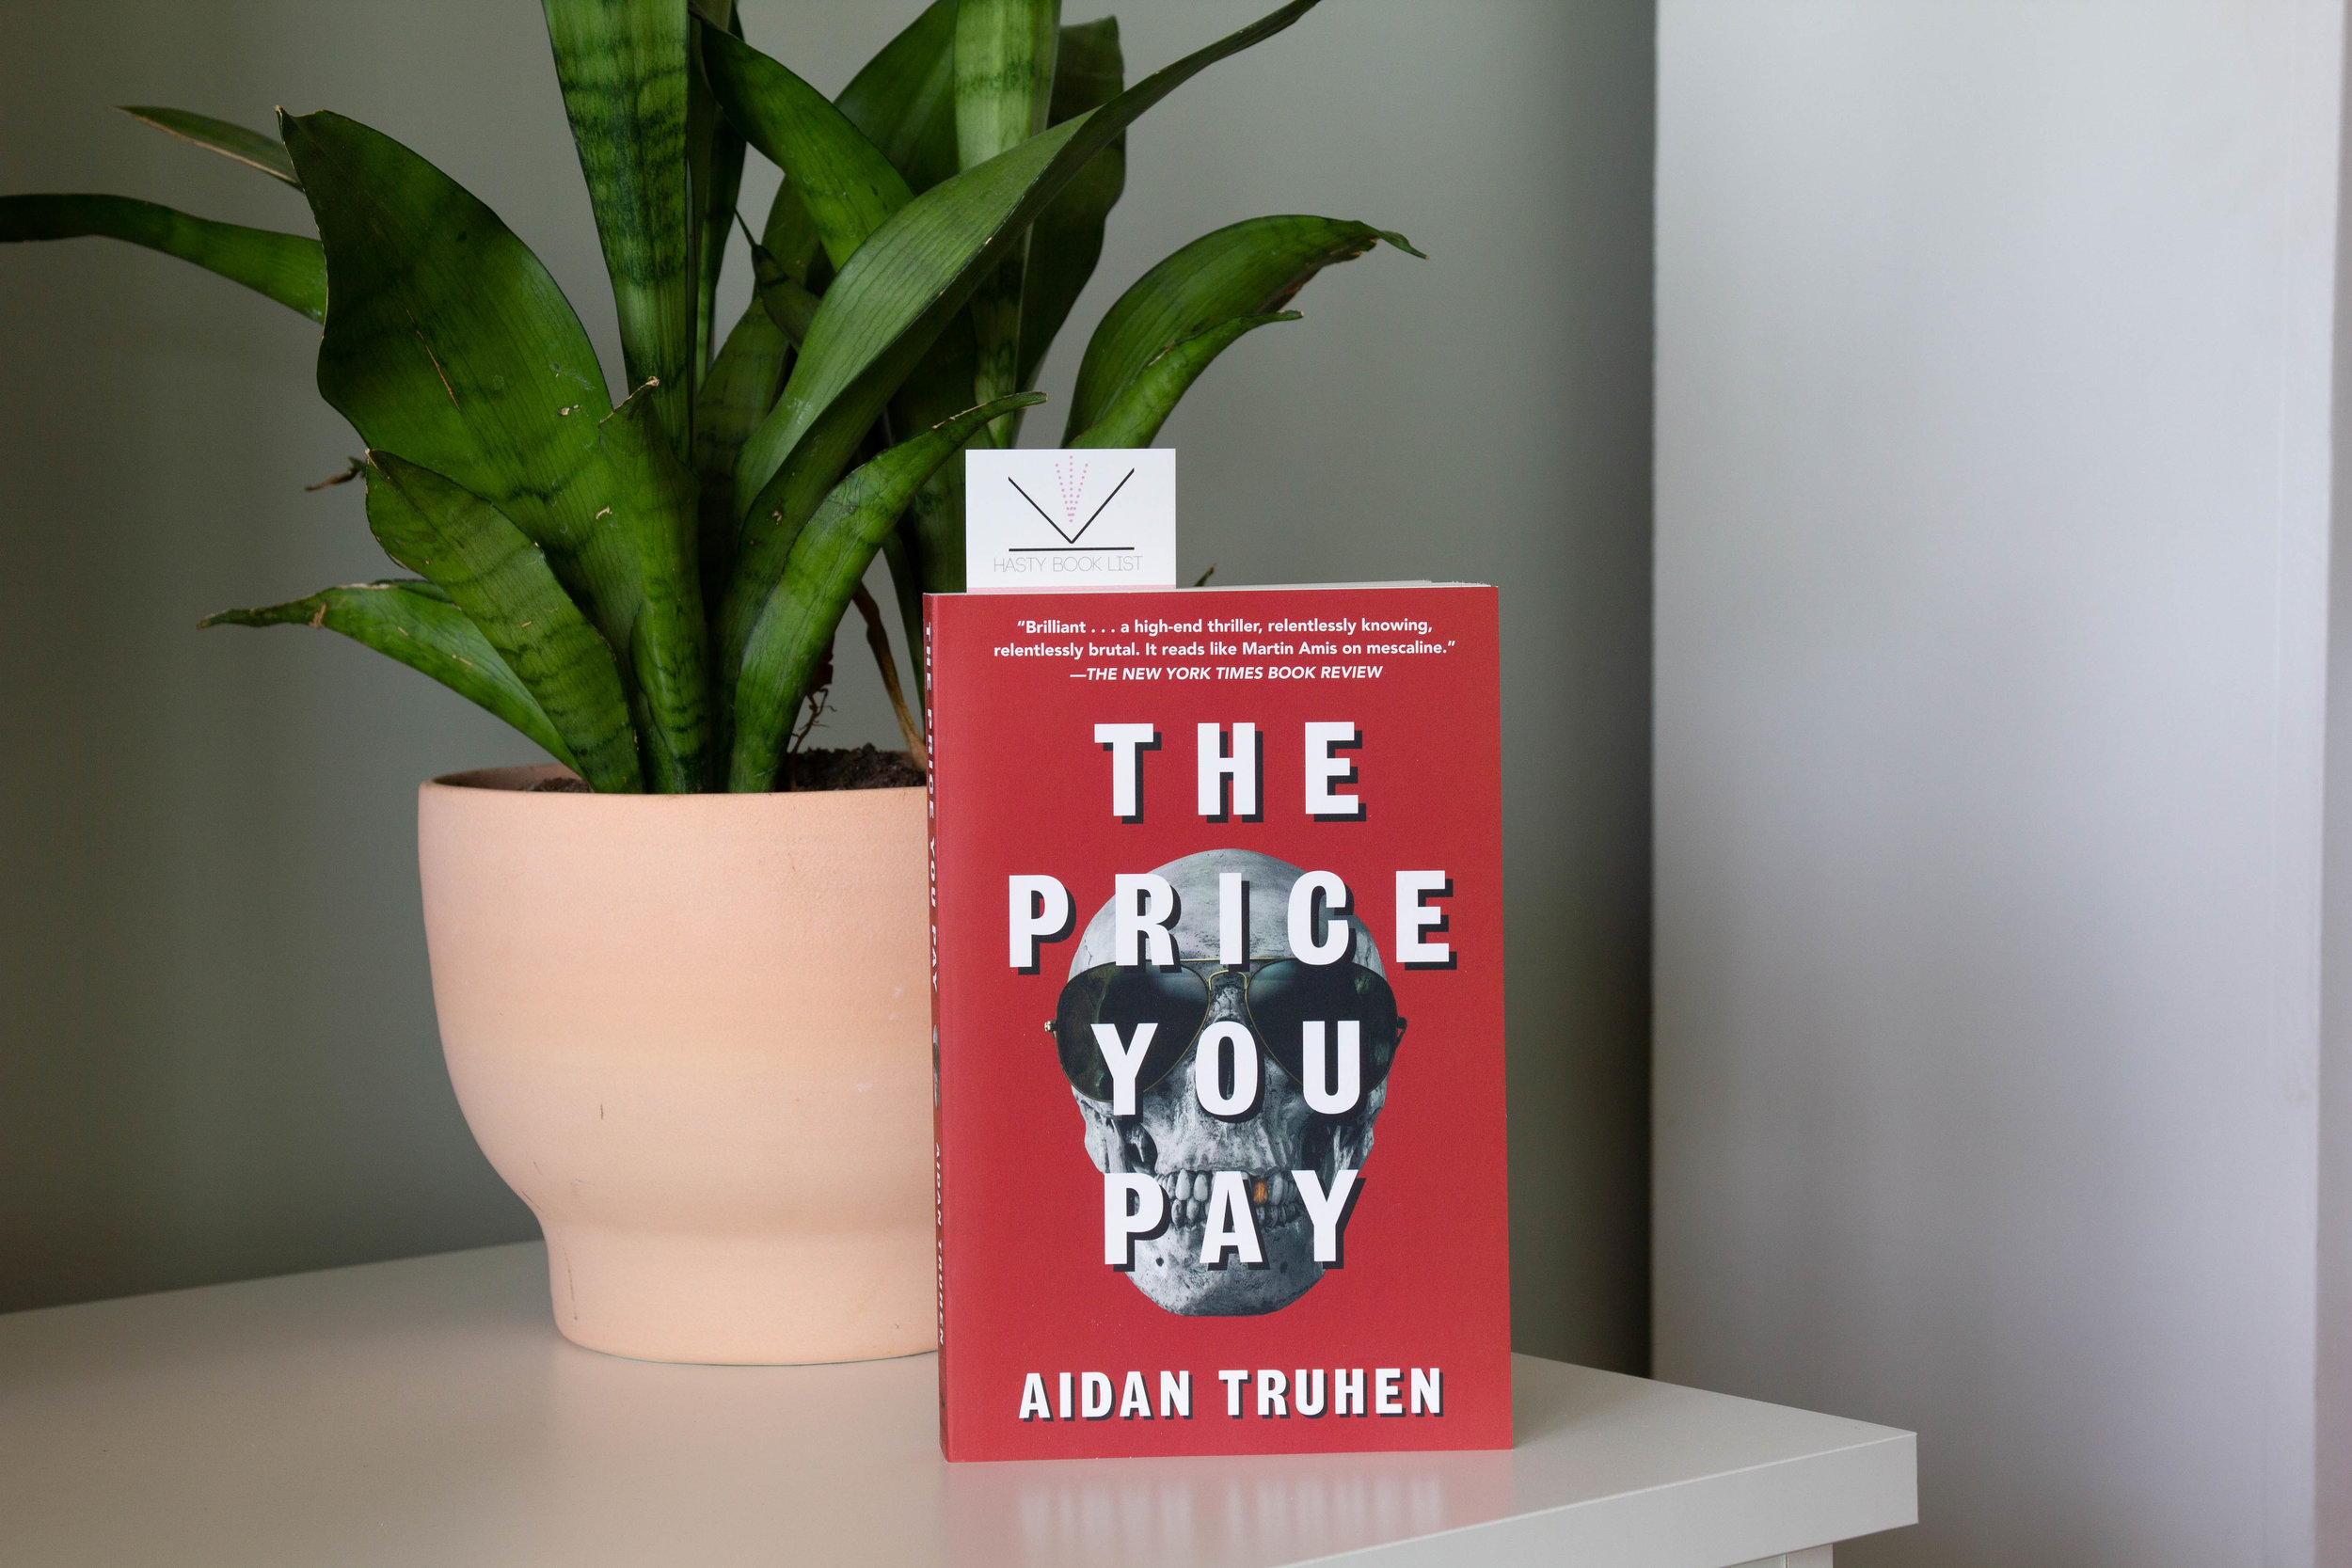 The Price You Pay by Aidan Truhen - In this audacious, lightning-paced thriller, a smart-mouthed, white-collar drug dealer--a hilariously irreverent antihero--seeks revenge when an unknown enemy takes out a contract on him.